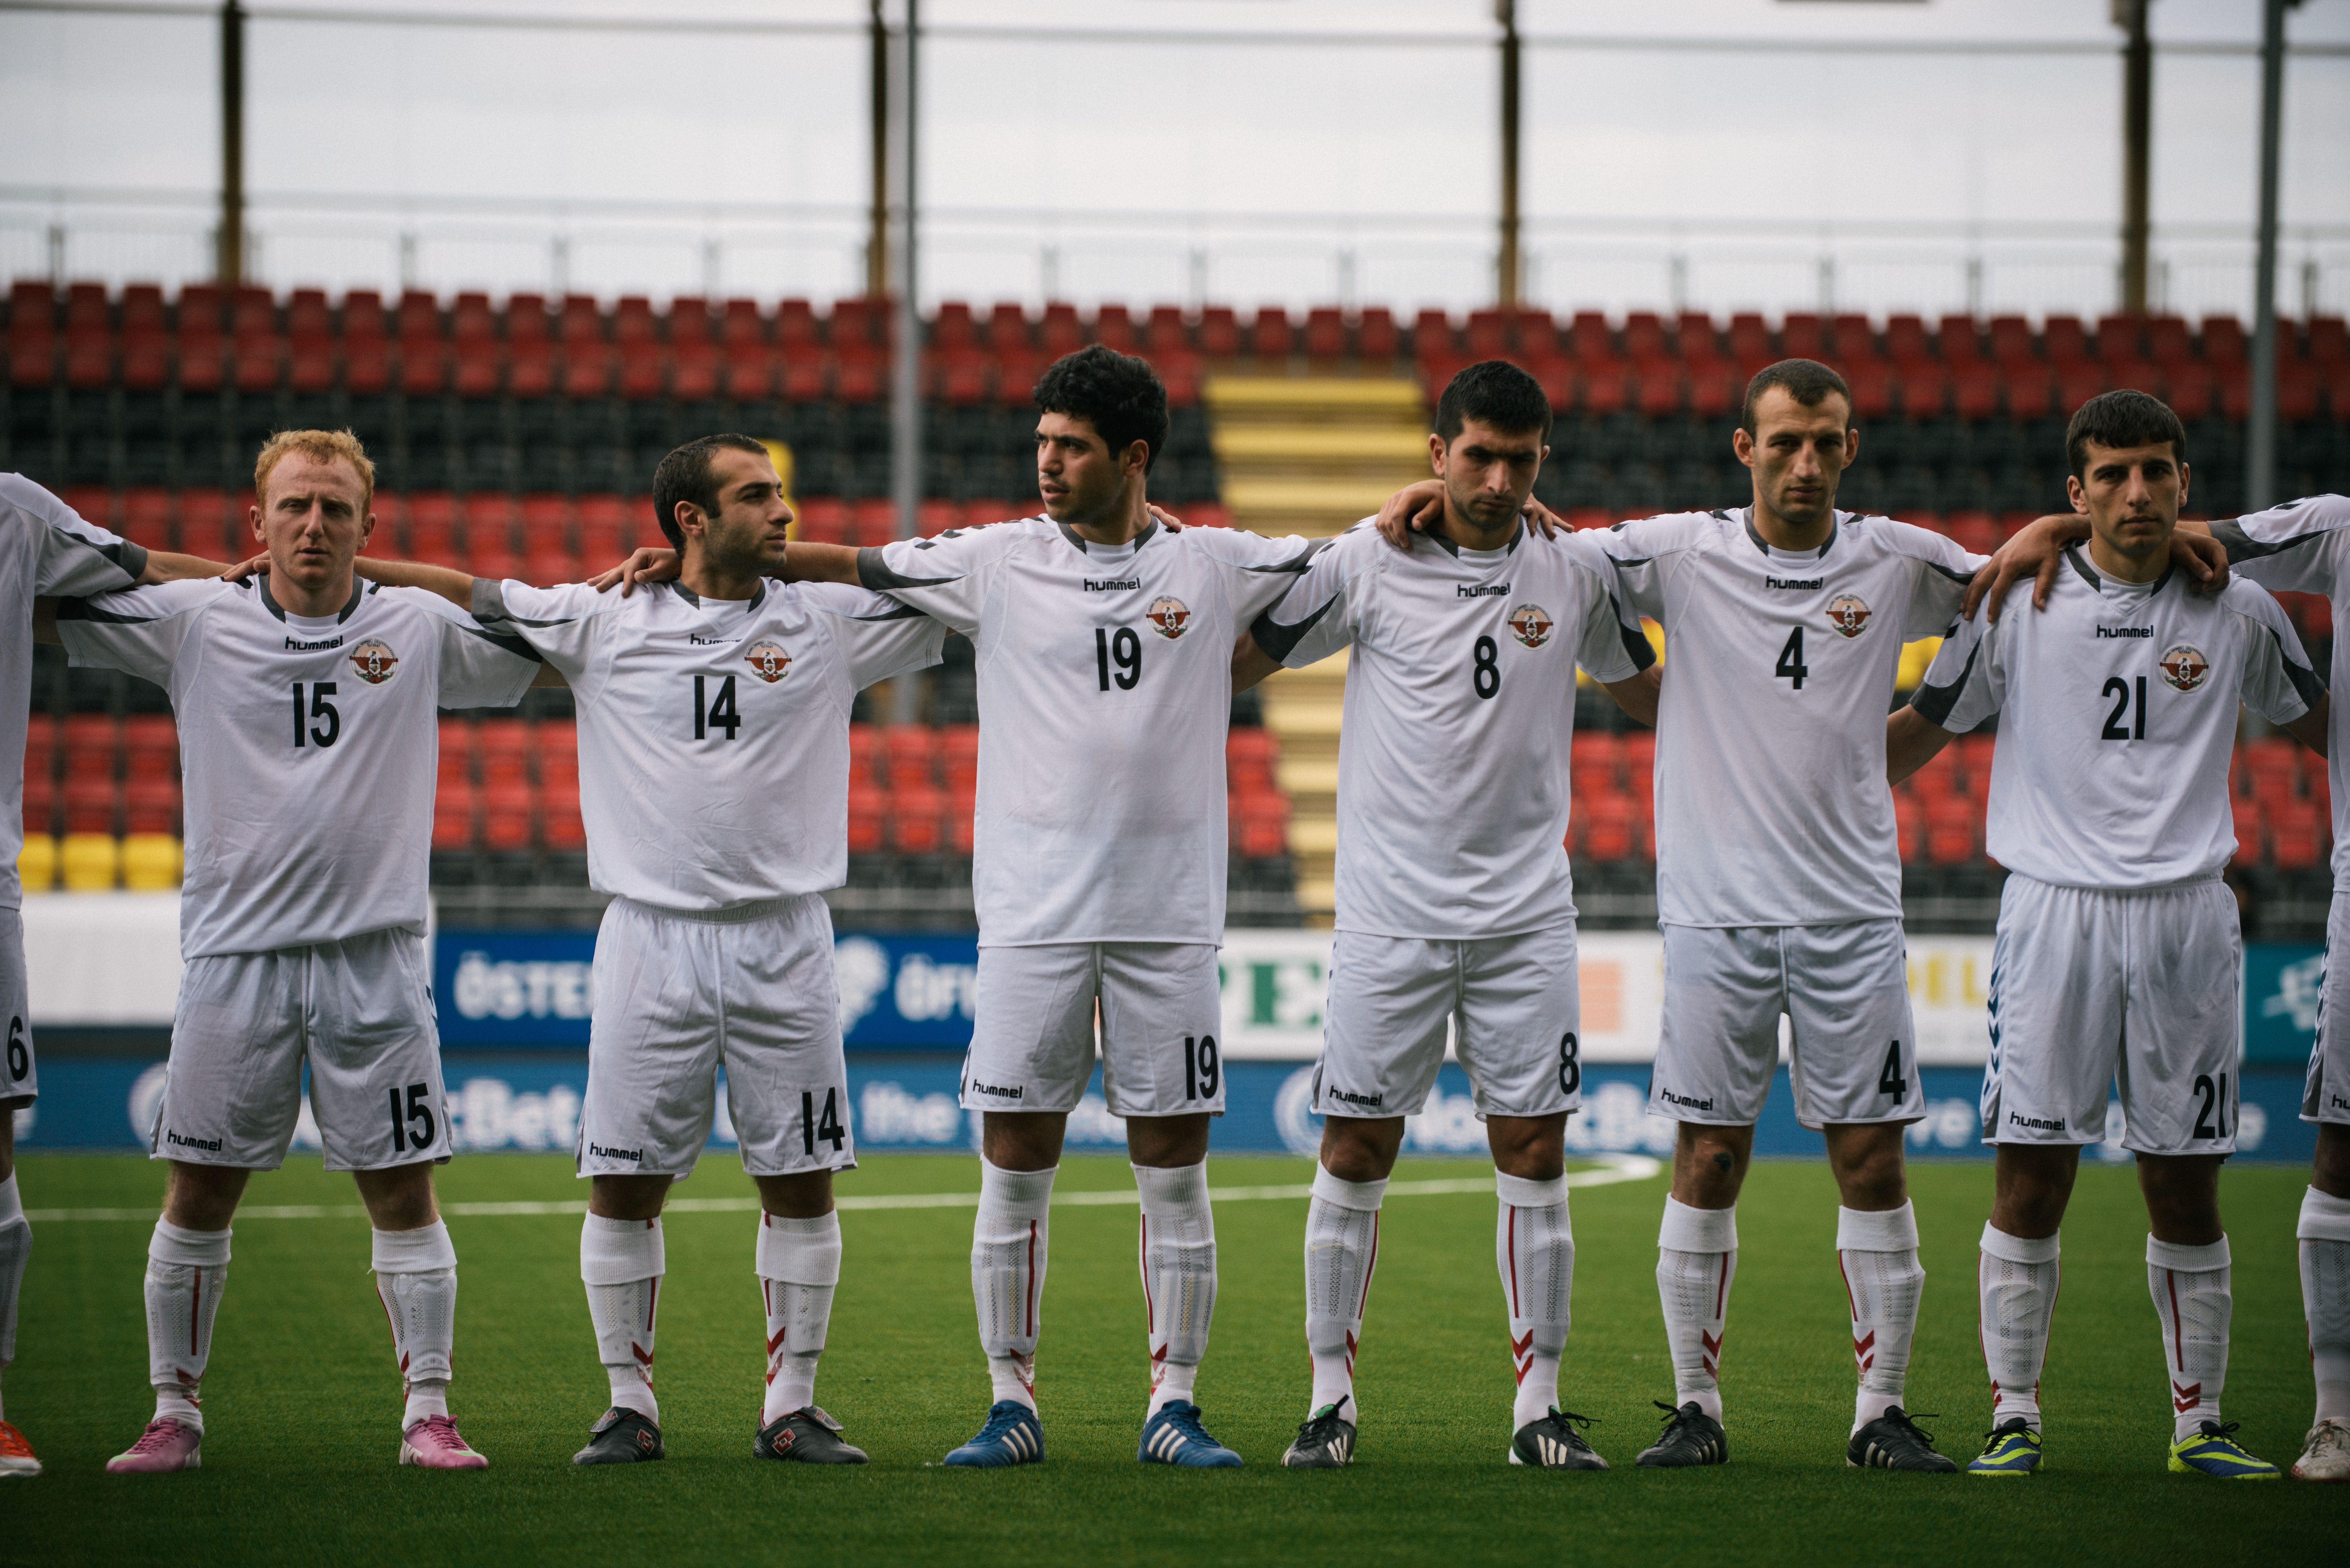 Players for the Nagorno Karabakh team line up before a placement match against Darfur United. Nagorno Karabakh won 12-0.